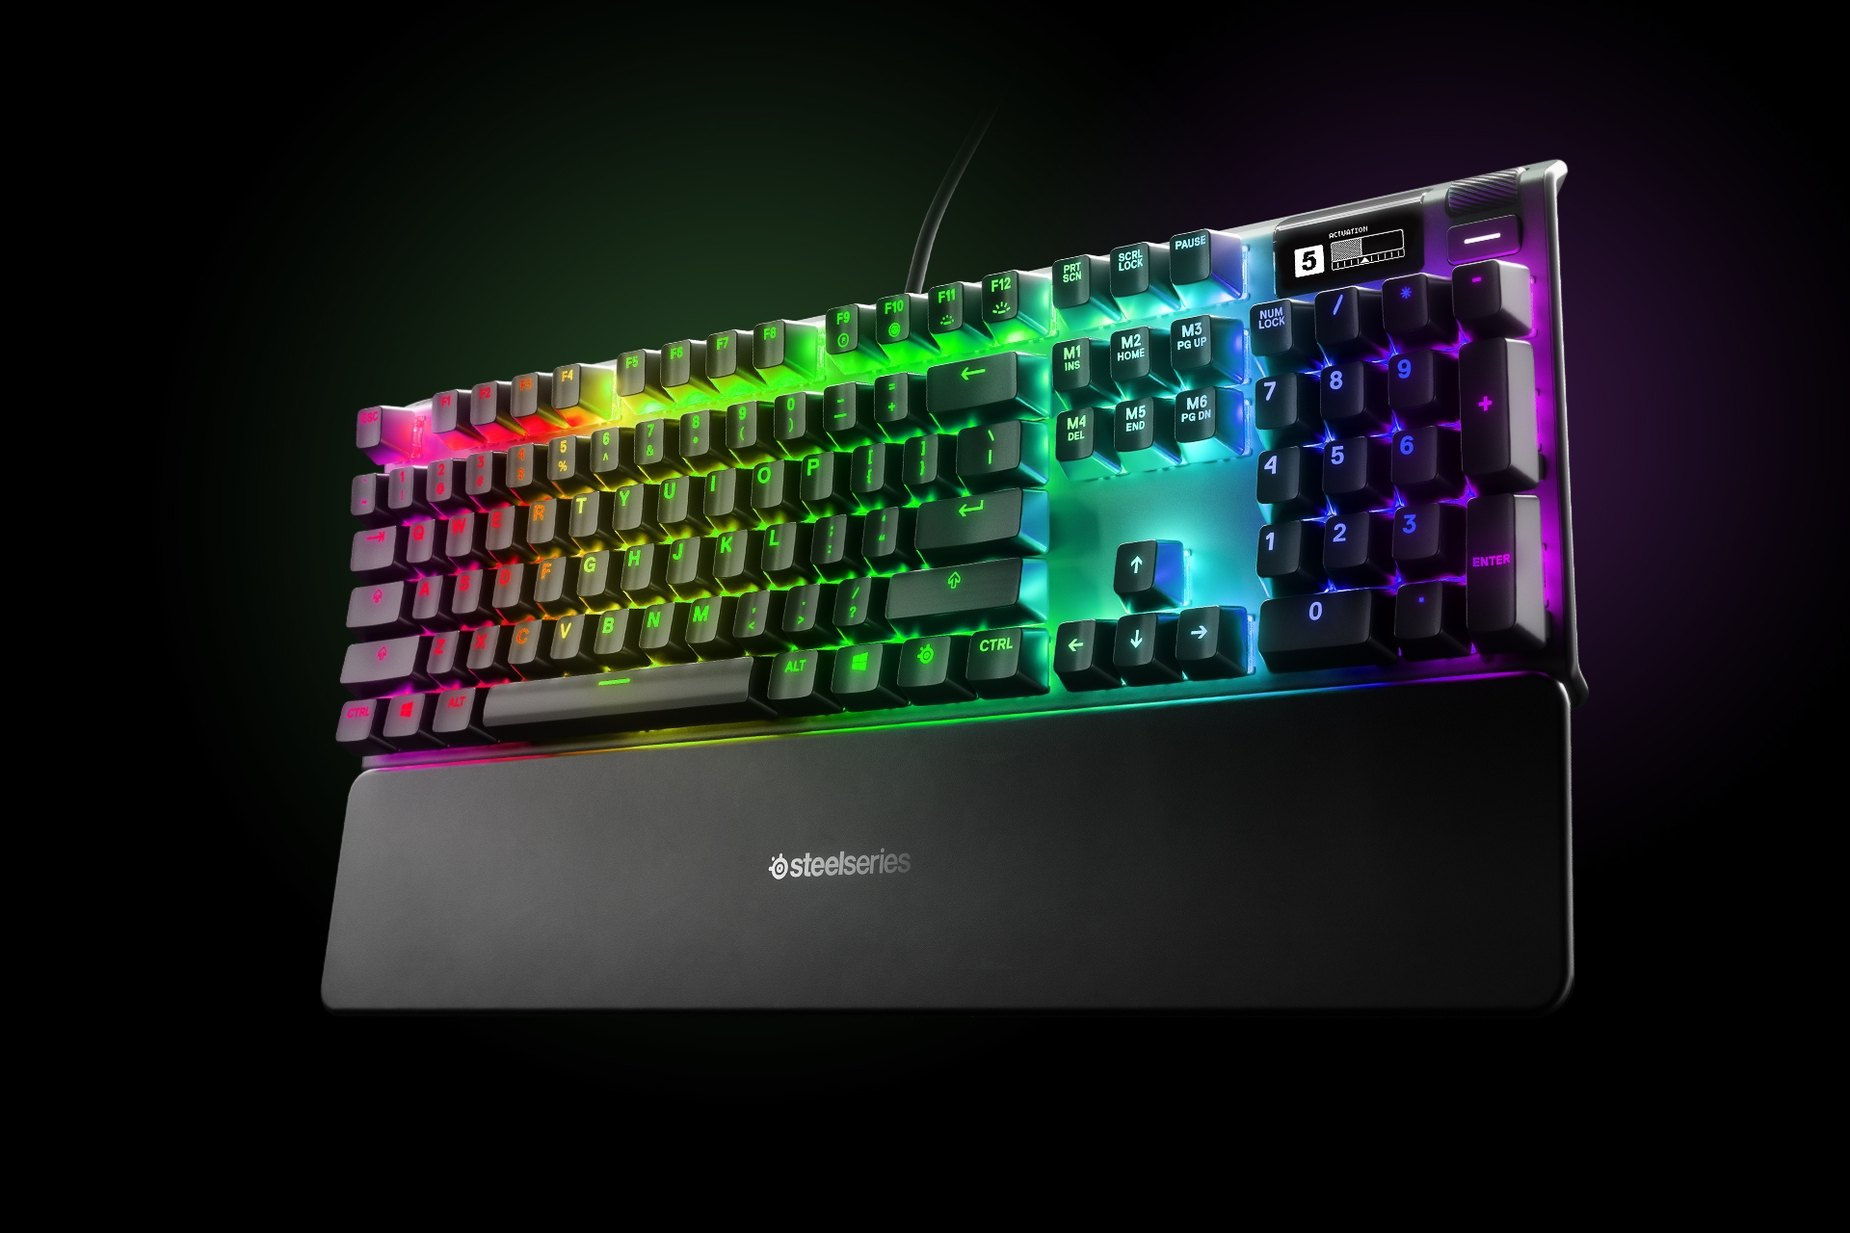 Deutsch - Apex Pro gaming keyboard with the illumination lit up on dark background, also shows the OLED screen and controls used to change settings, switch actuation, and adjust audio